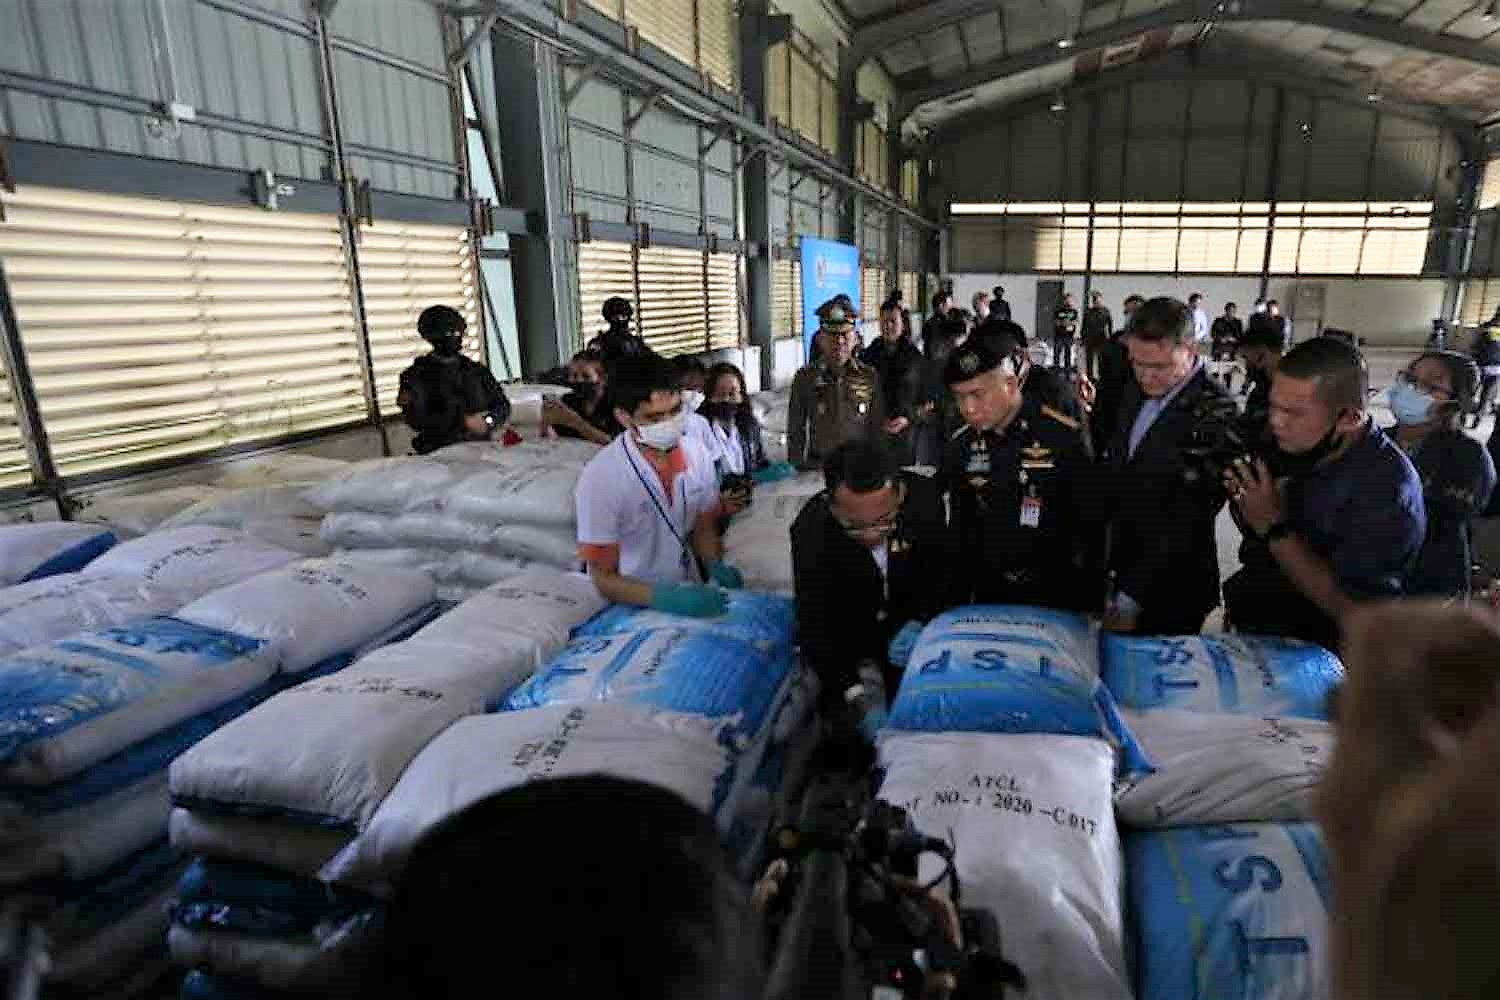 Thailand's giant drug bust claim turns out to be false